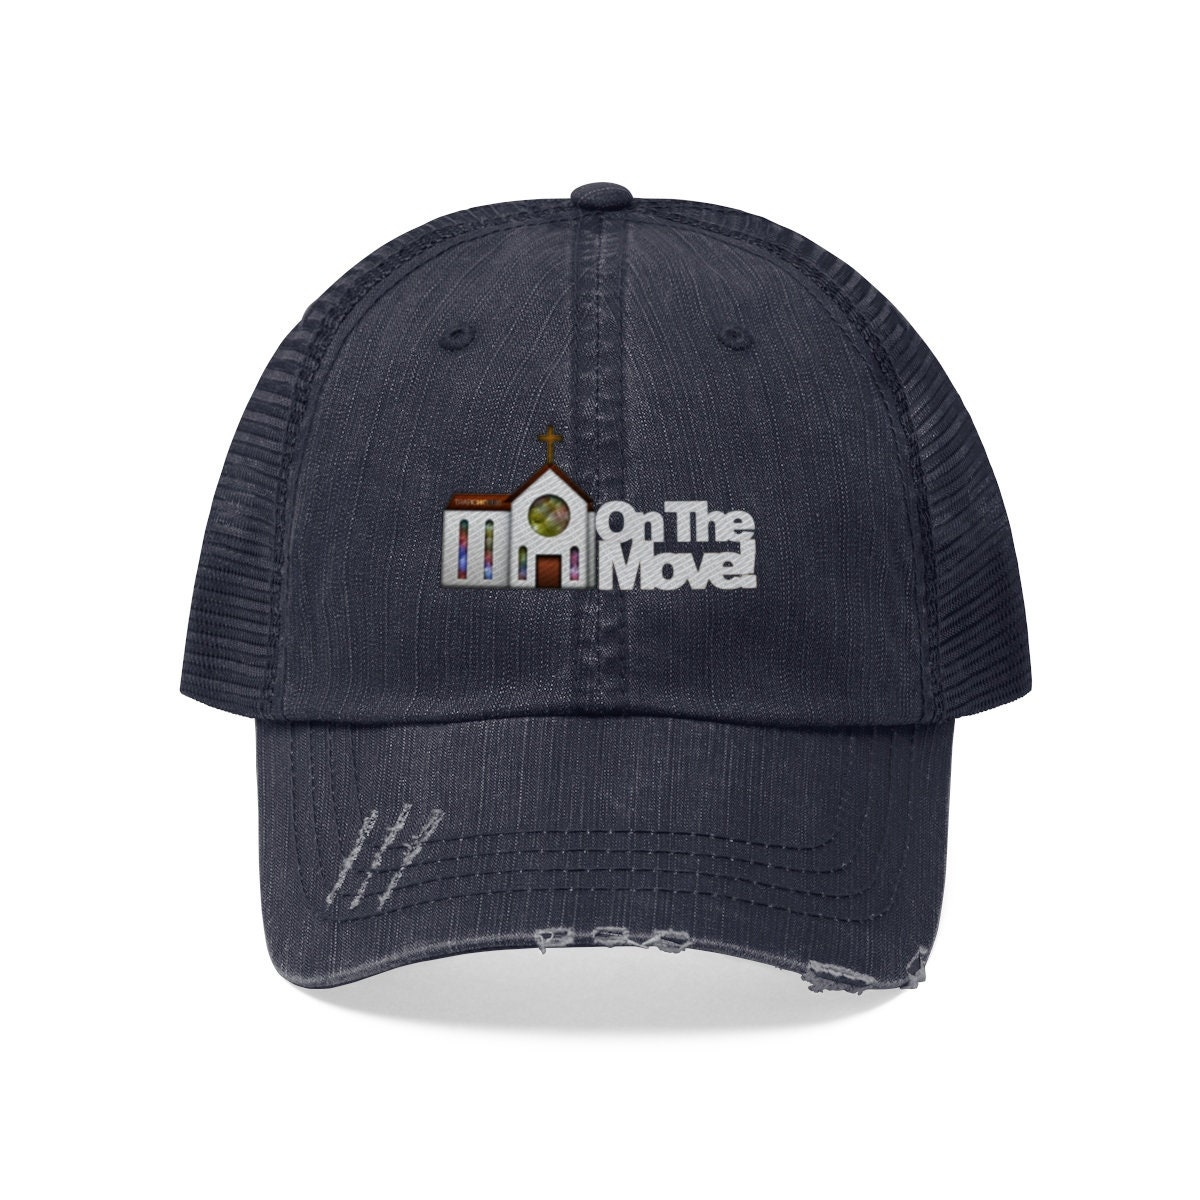 Church On The Move White letter Embroidery Cap e958df40cdae